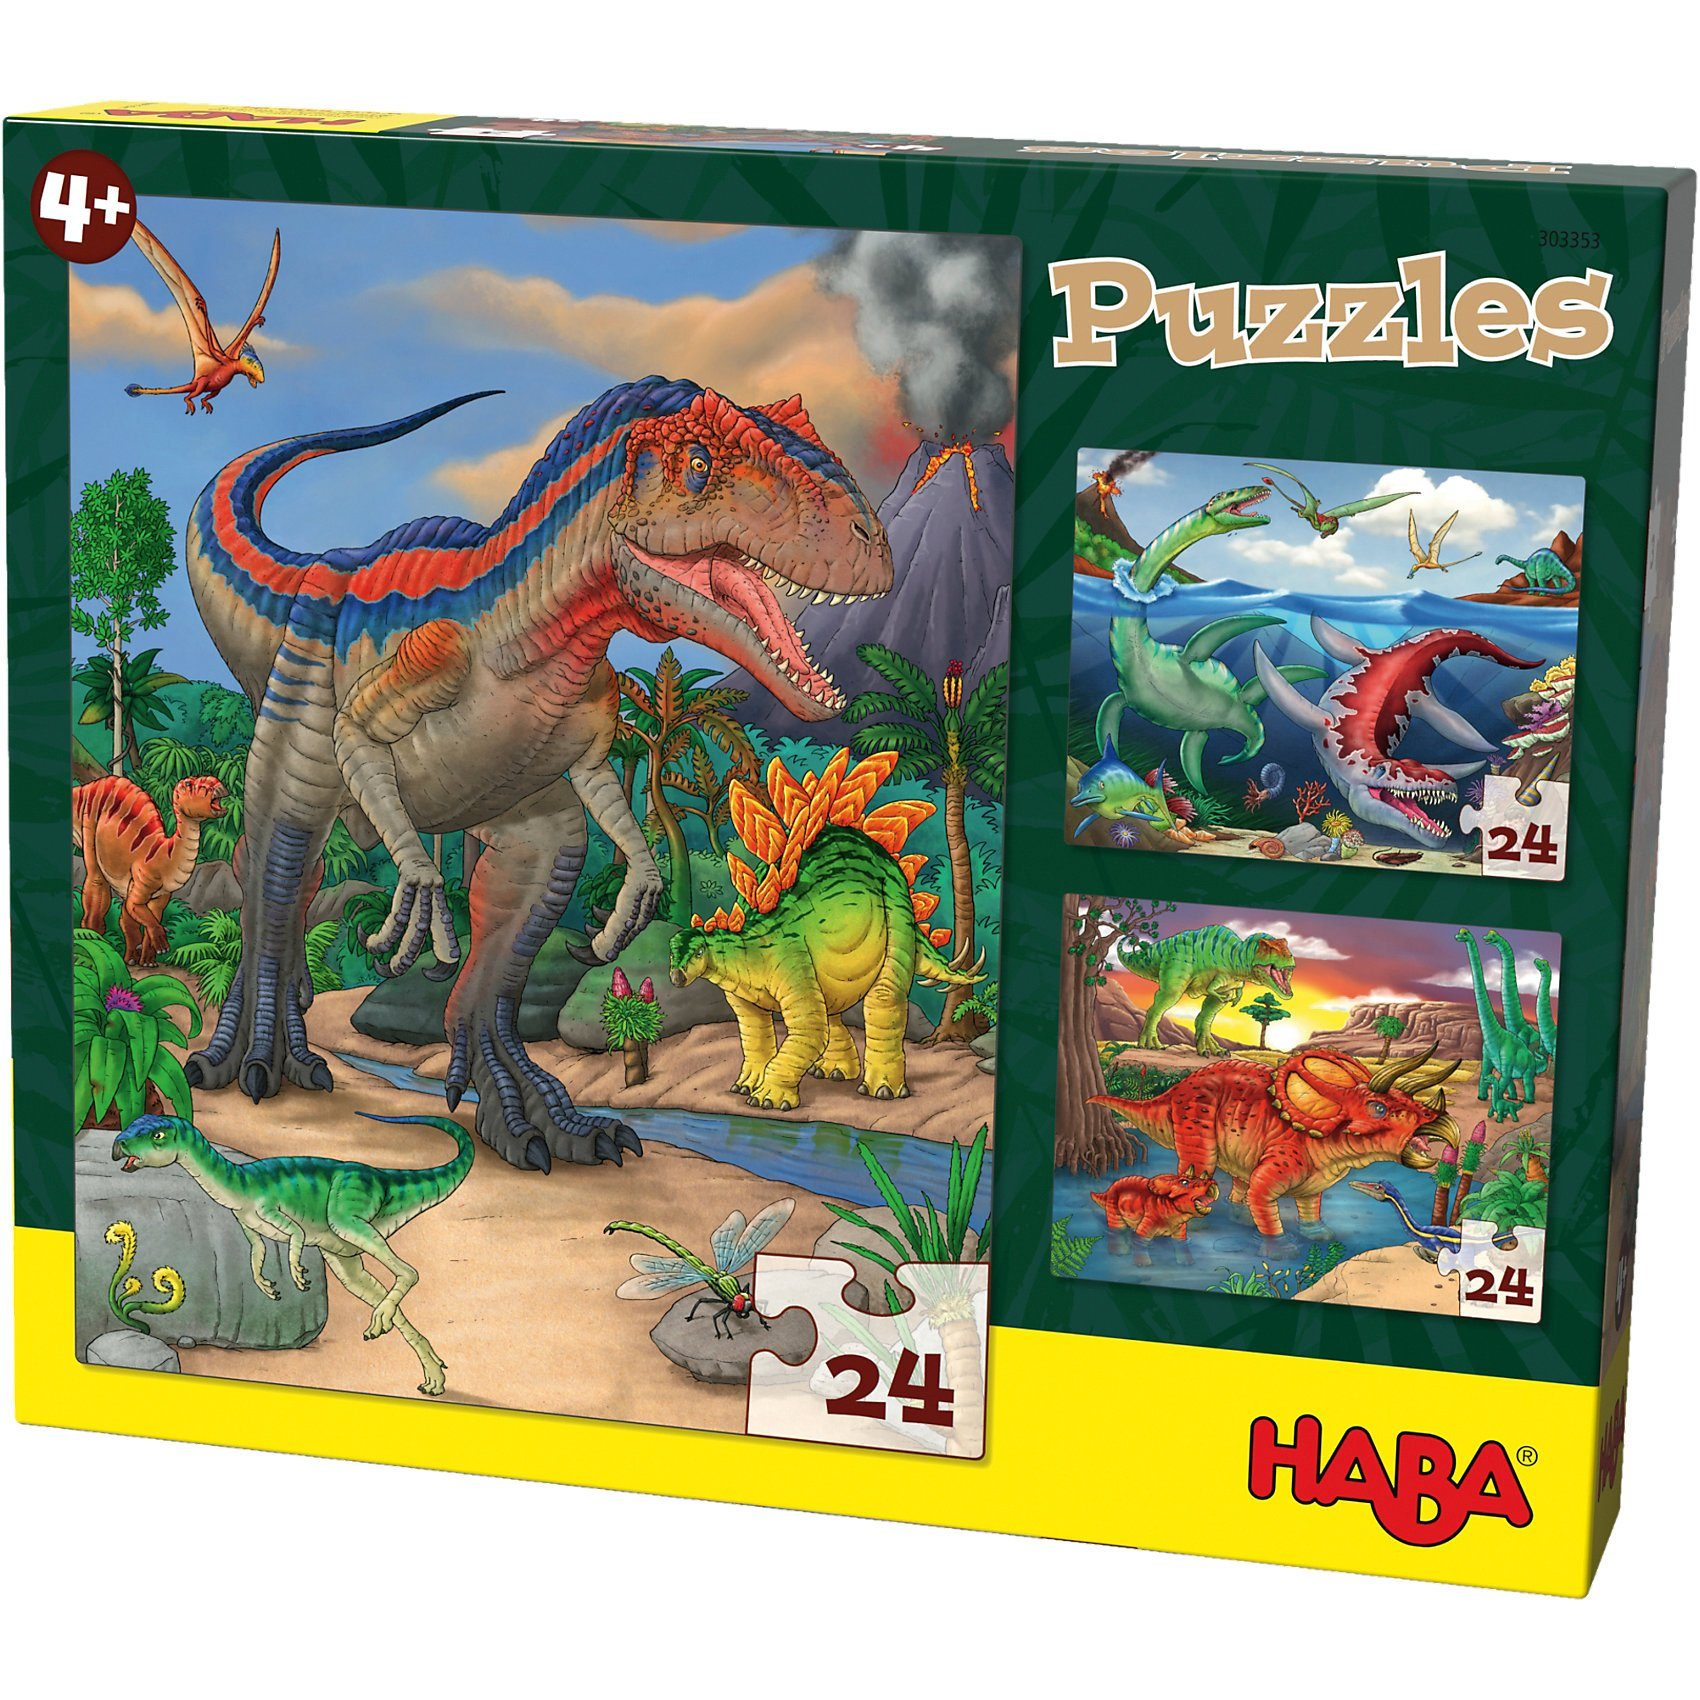 Haba Puzzles - 3 x 24 Teile - Dinosaurier